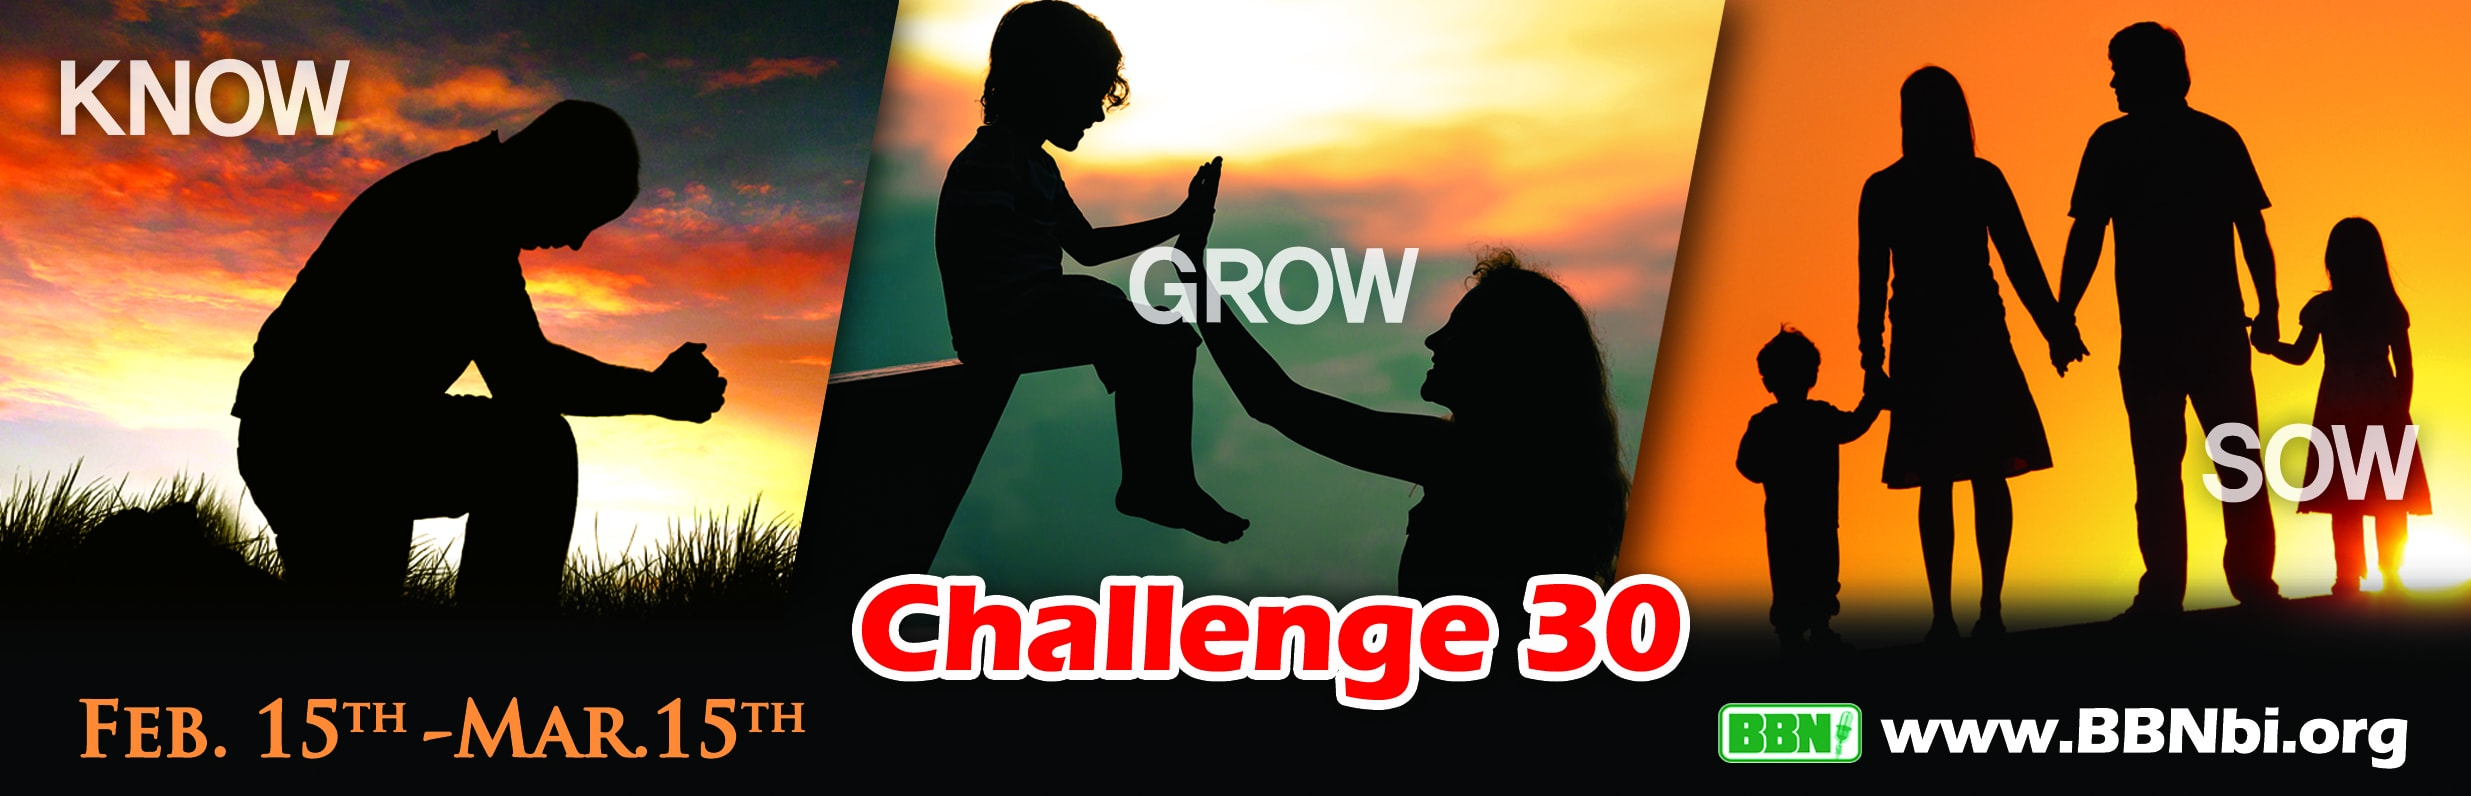 challenge30_2018_withTXT